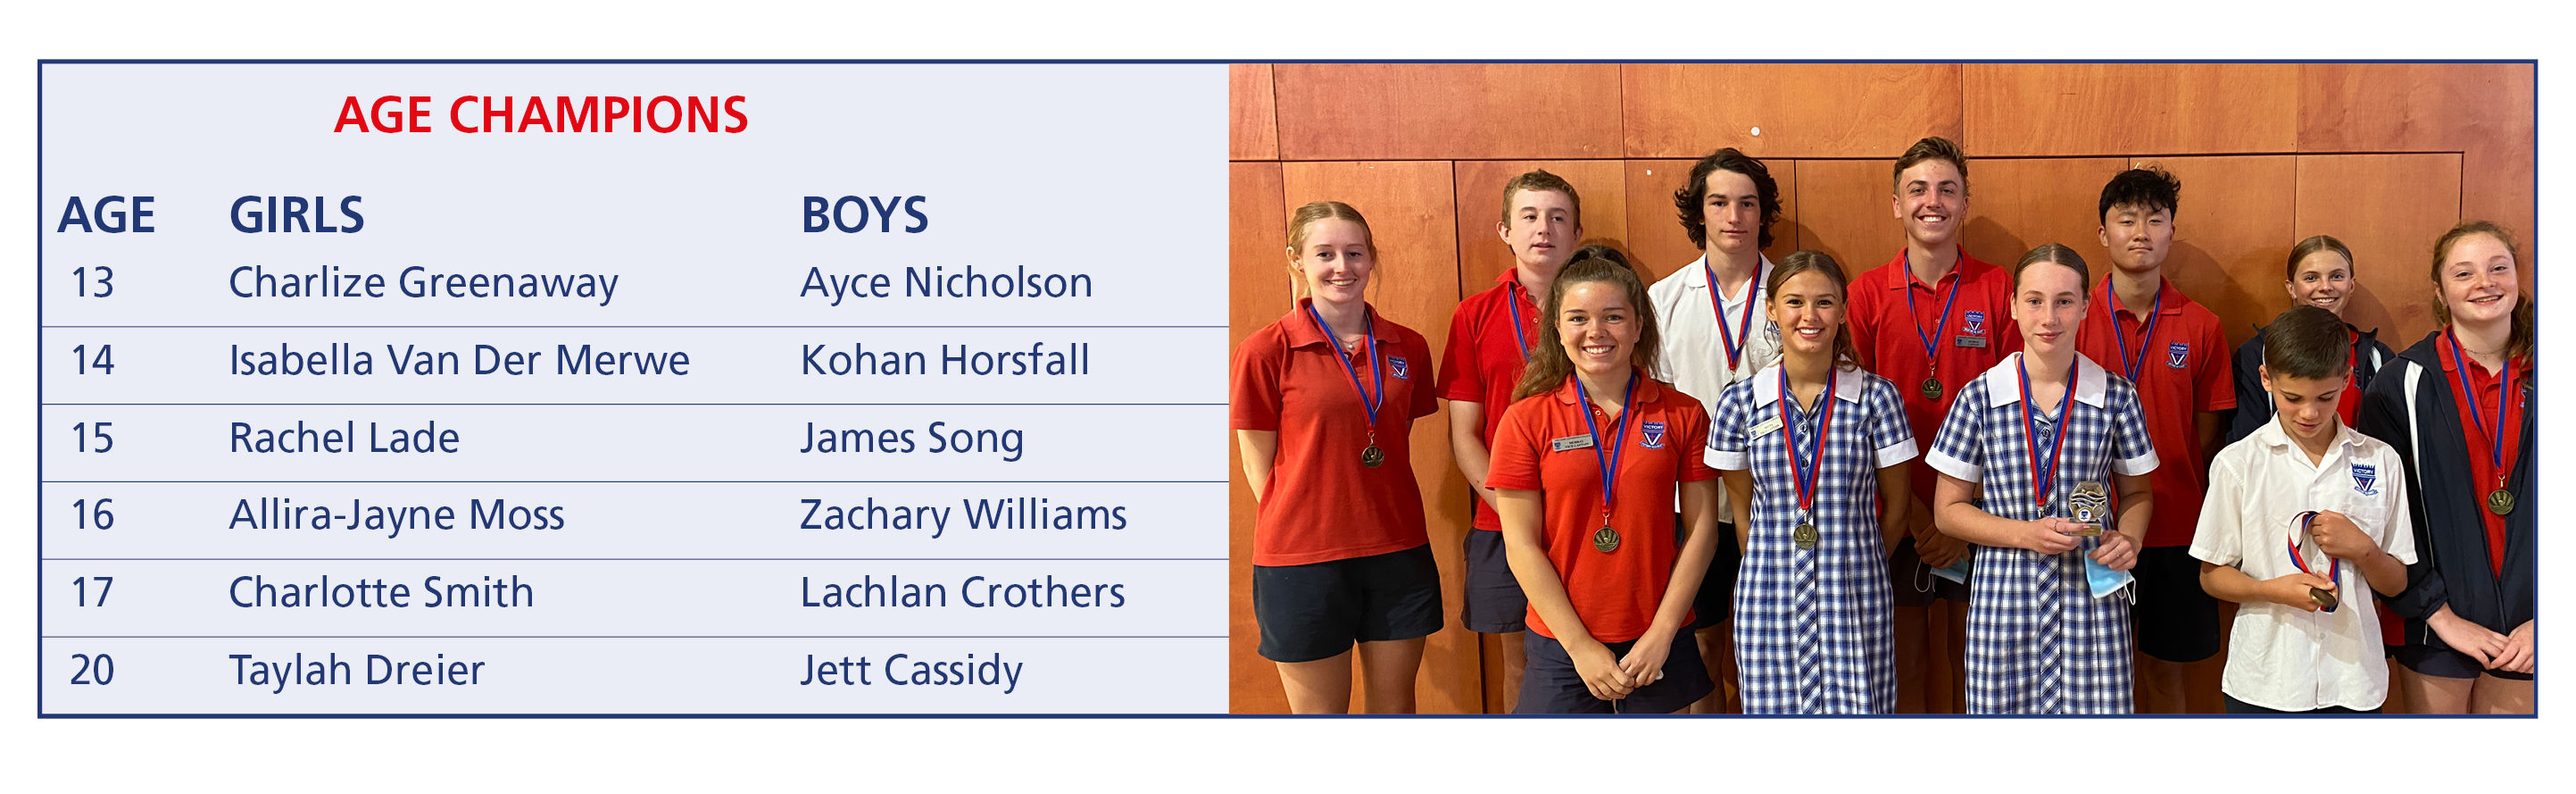 2021 Secondary Swimming Age Champions